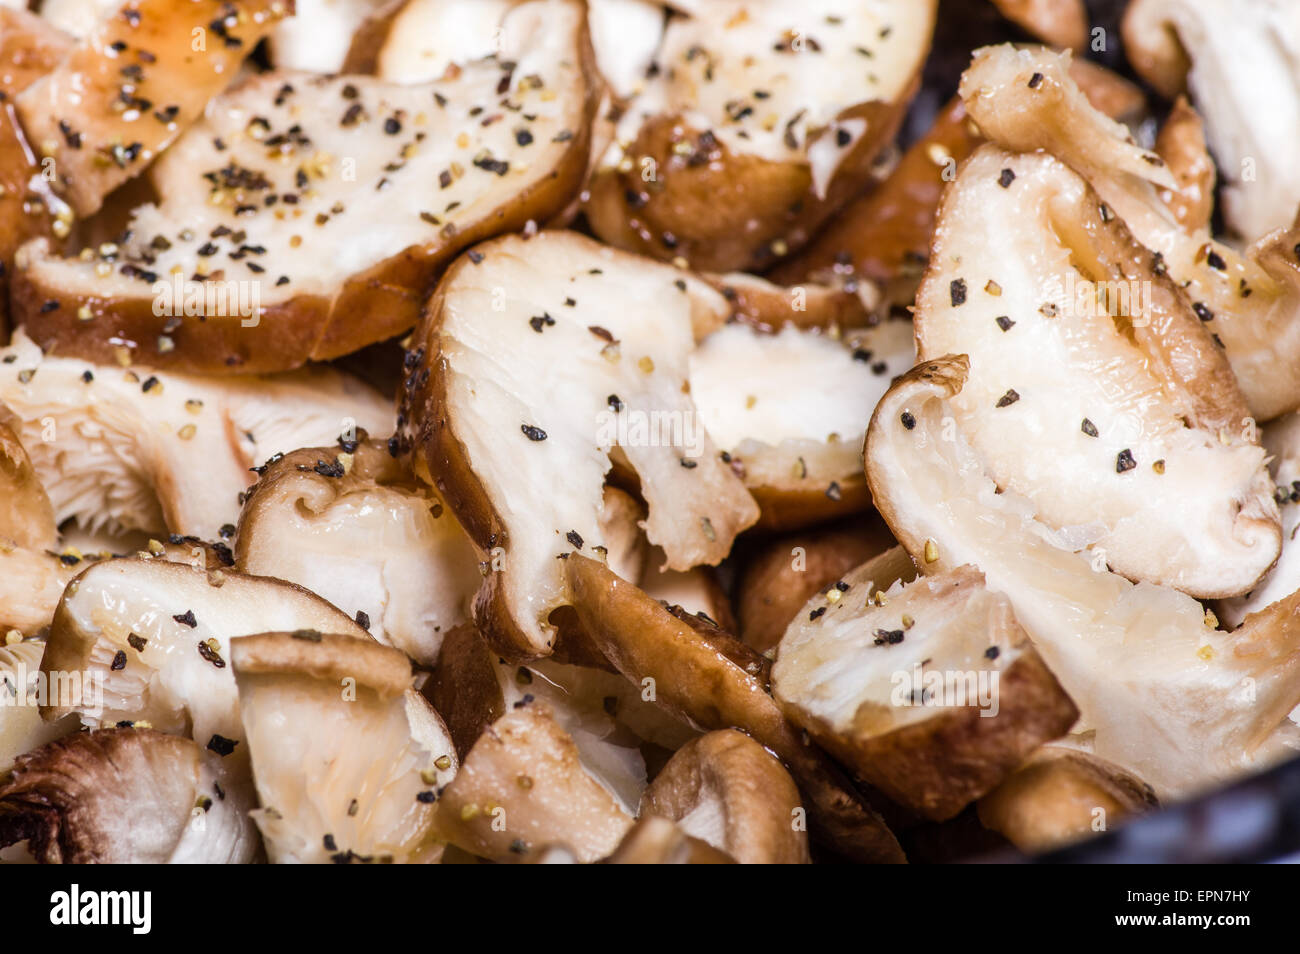 Seasoned sliced mushrooms ready to prepare for cooking - Stock Image